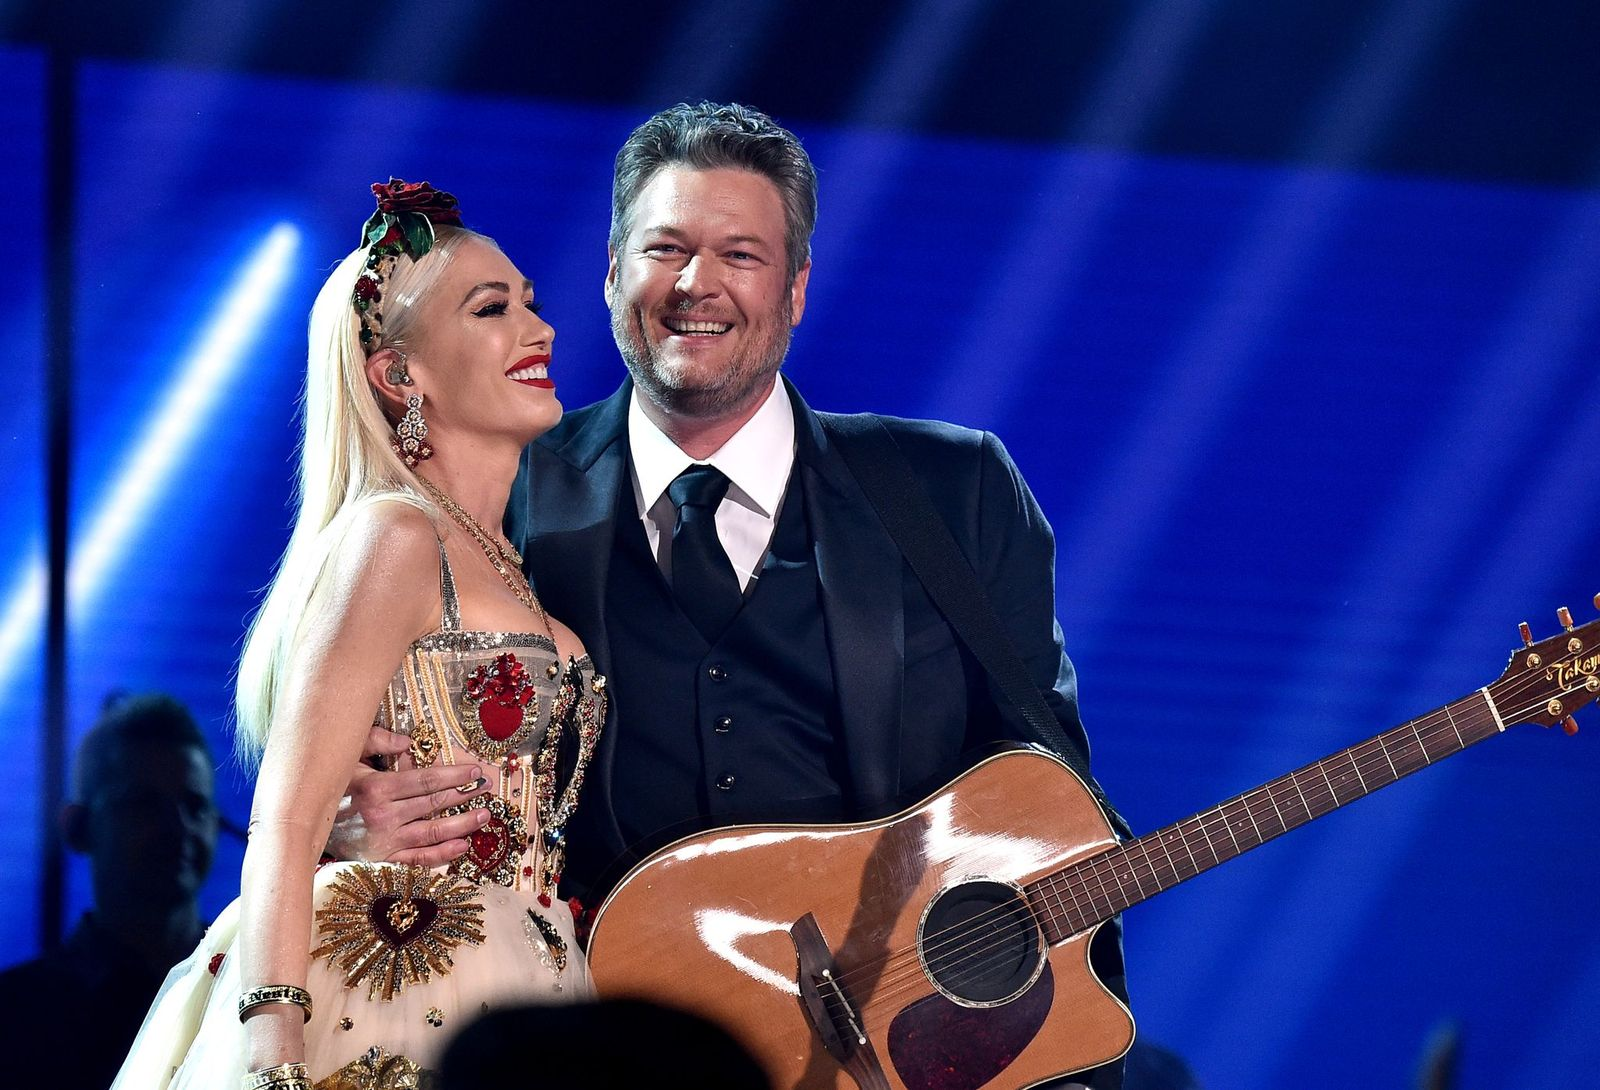 Gwen Stefani and Blake Shelton at the 62nd Annual GRAMMY Awards on January 26, 2020 in Los Angeles, California   Photo: Getty Images